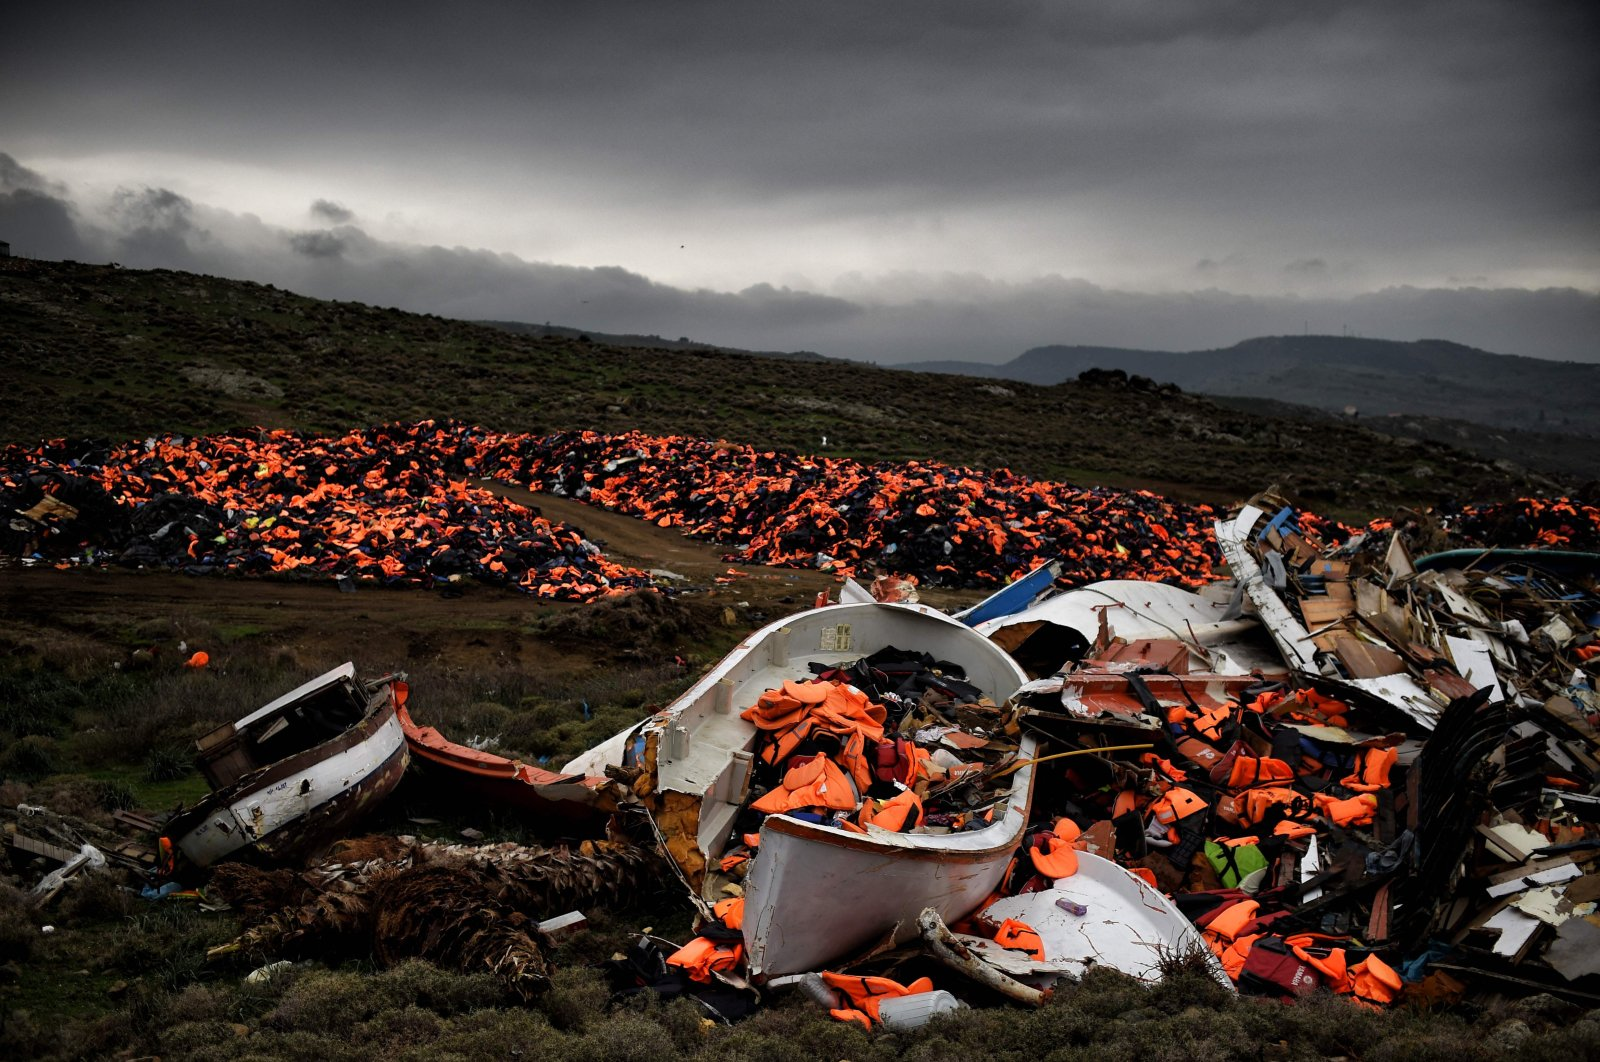 Wrecked boats and thousands of life jackets used by refugees and migrants during their journey across the Aegean sea lie in a dump in Mithimna, Greece, Feb. 19, 2016. (AFP)